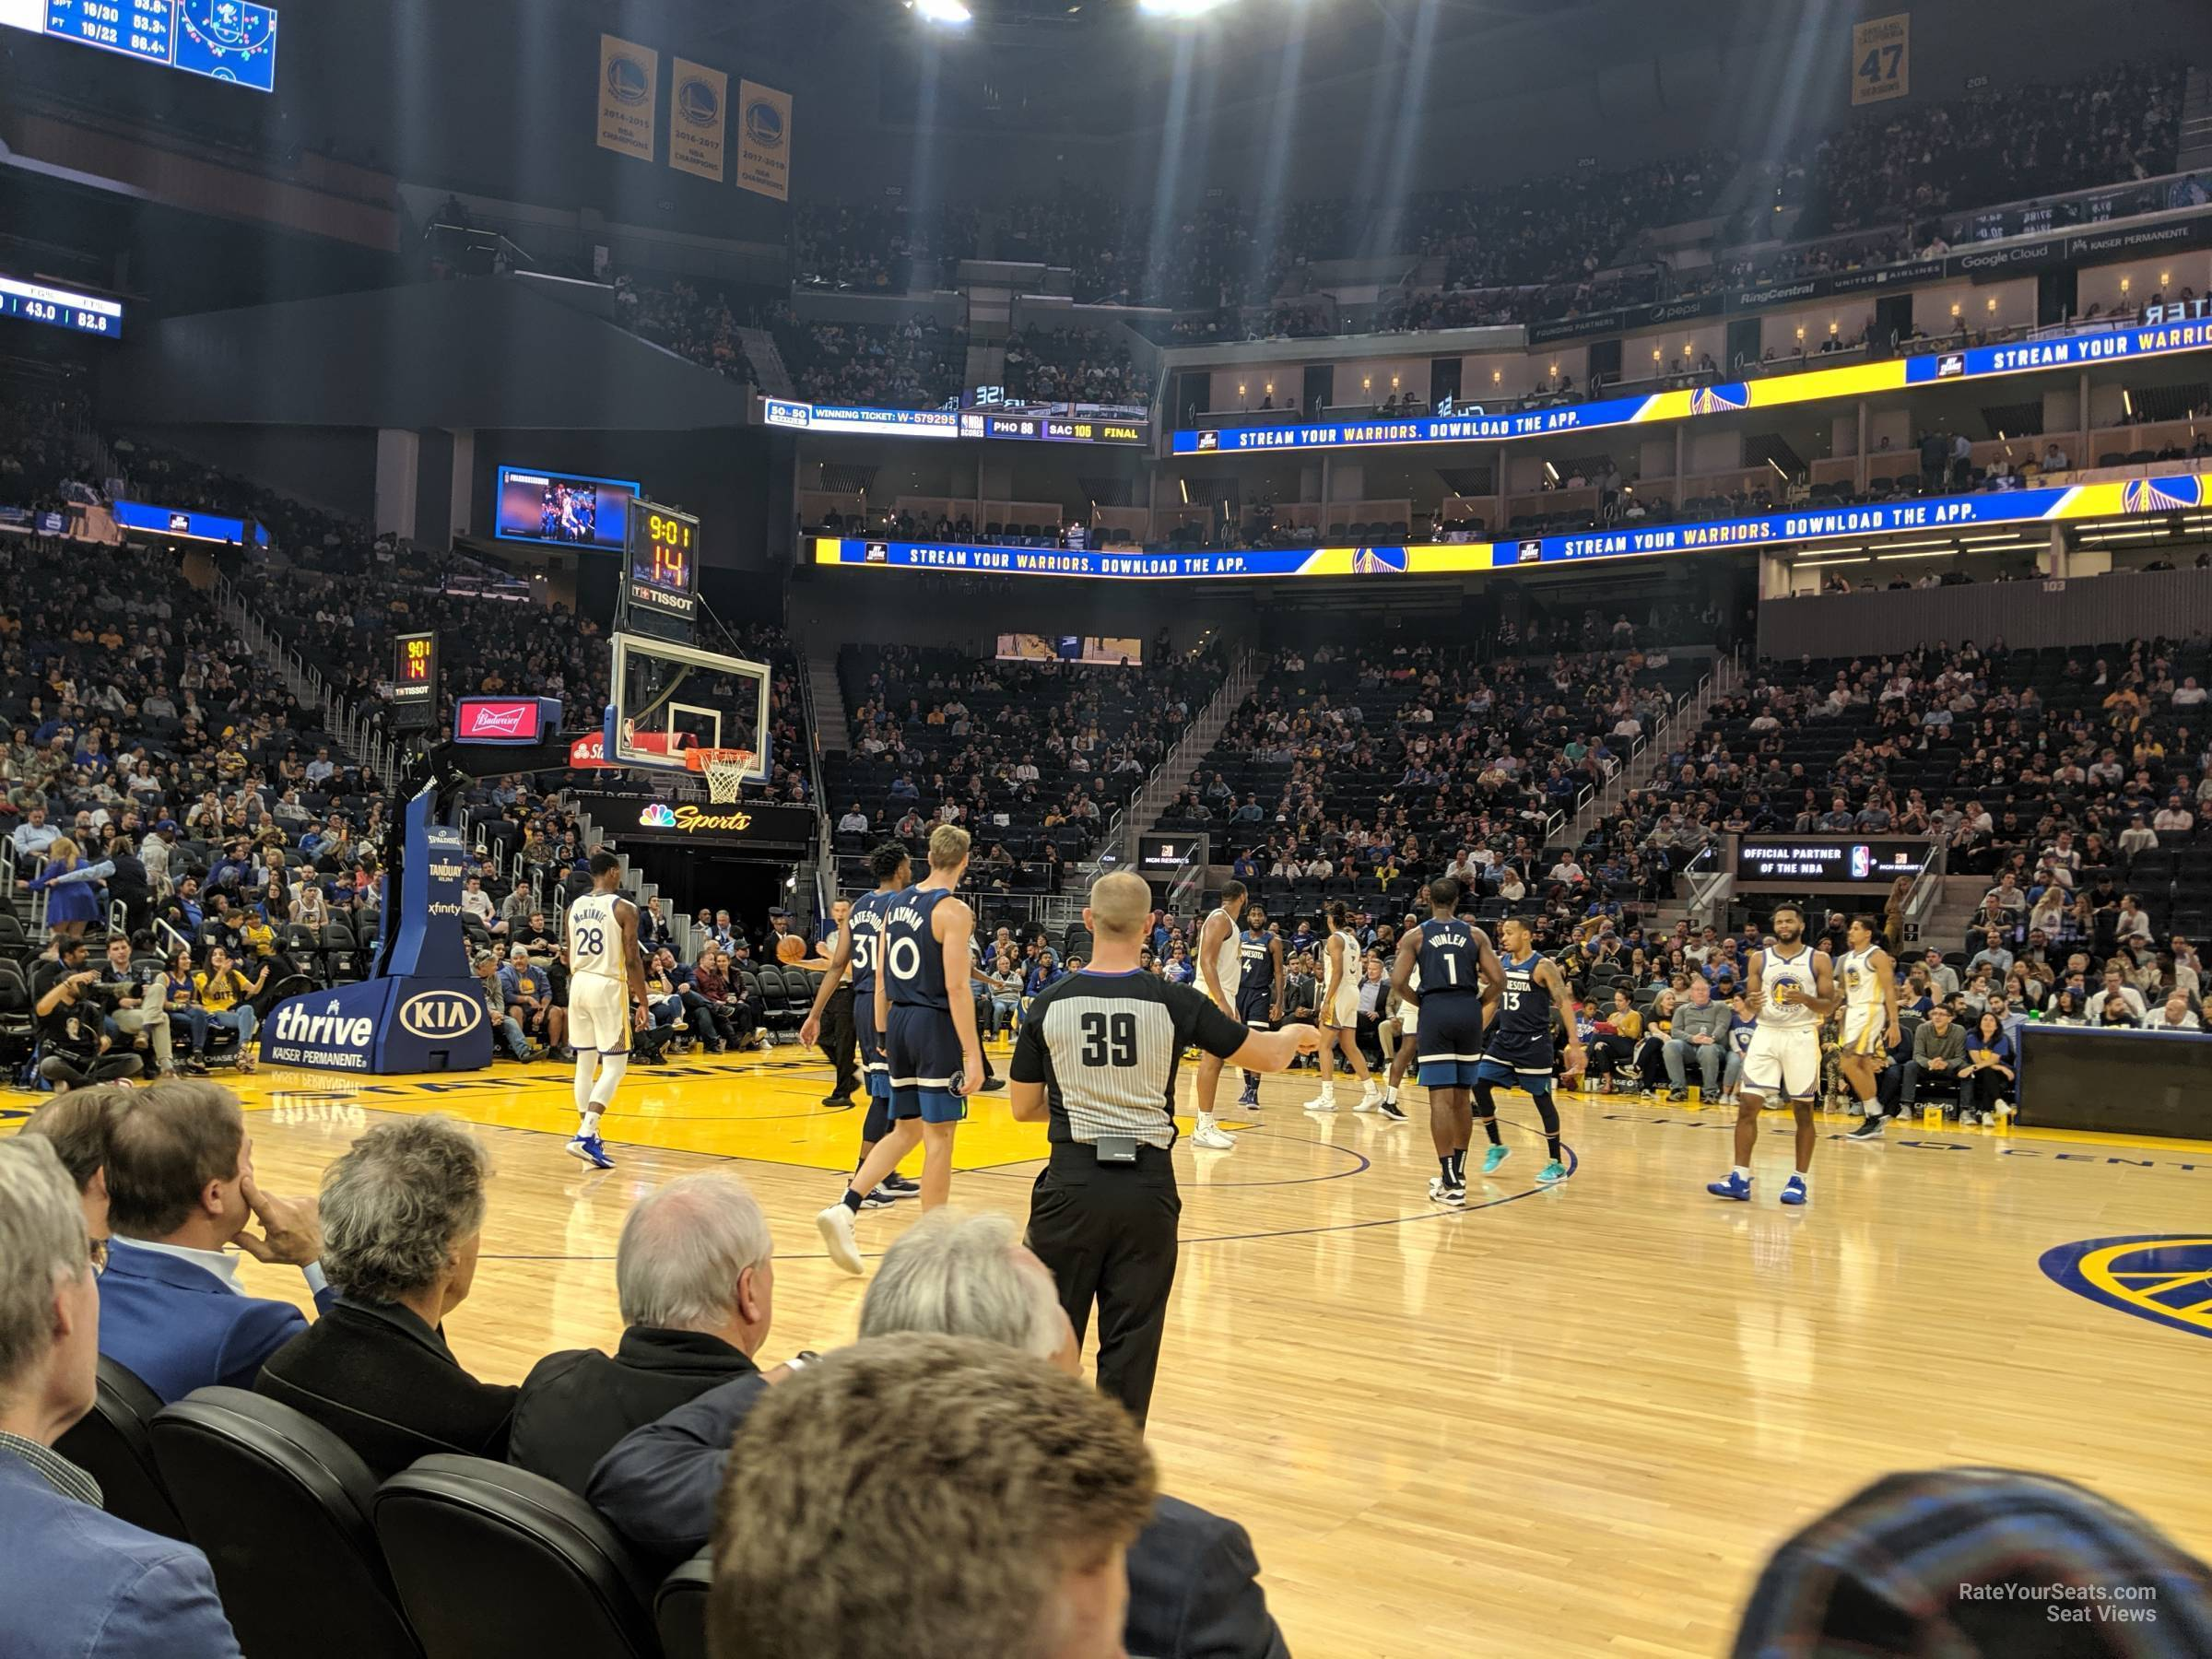 VIP Courtside seat view